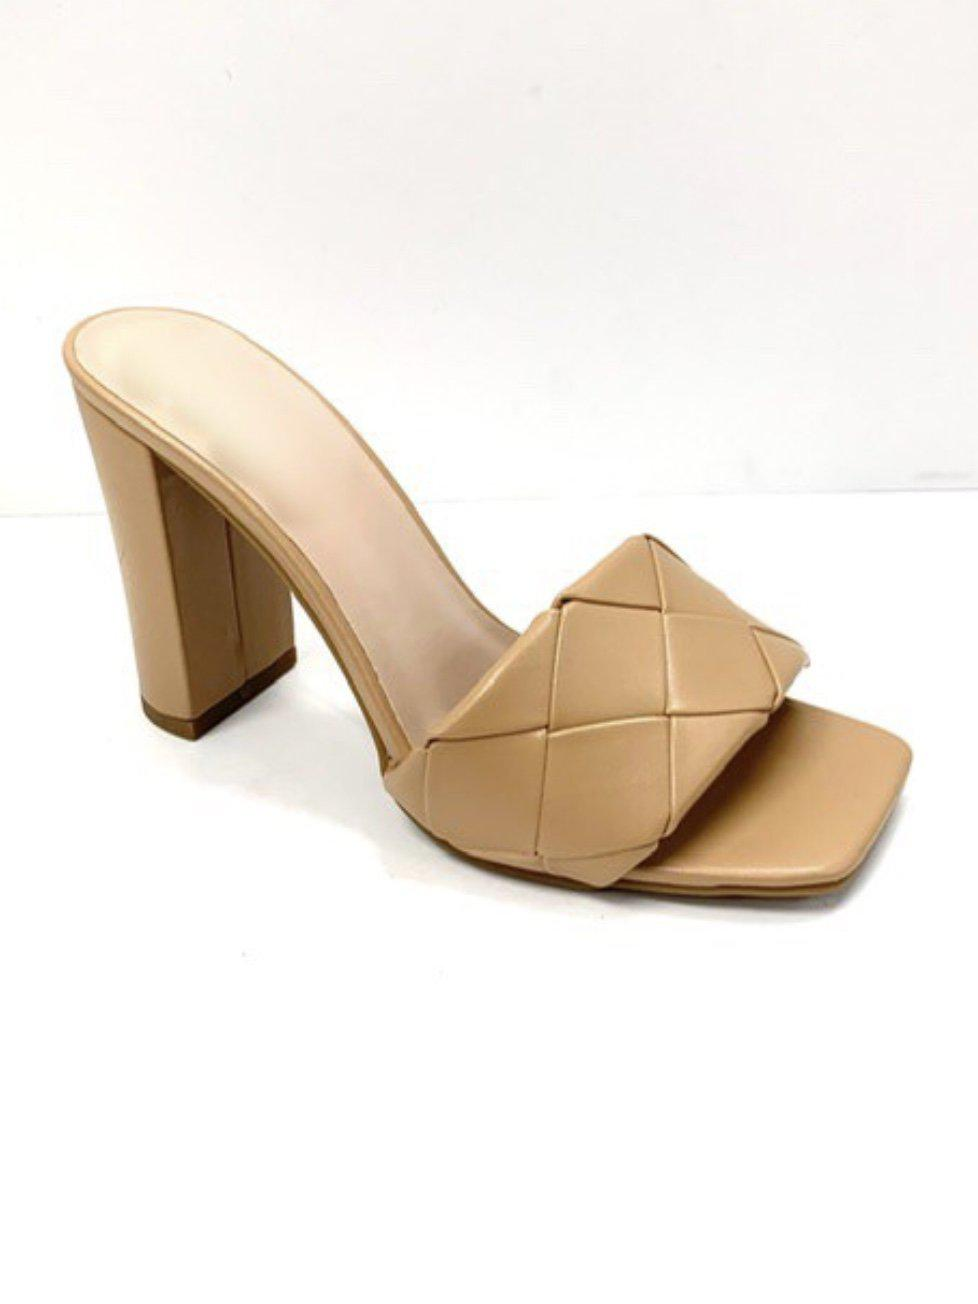 ON YOUR HEELS SLIDE-Women's SHOES-New Arrivals-Runway Seven